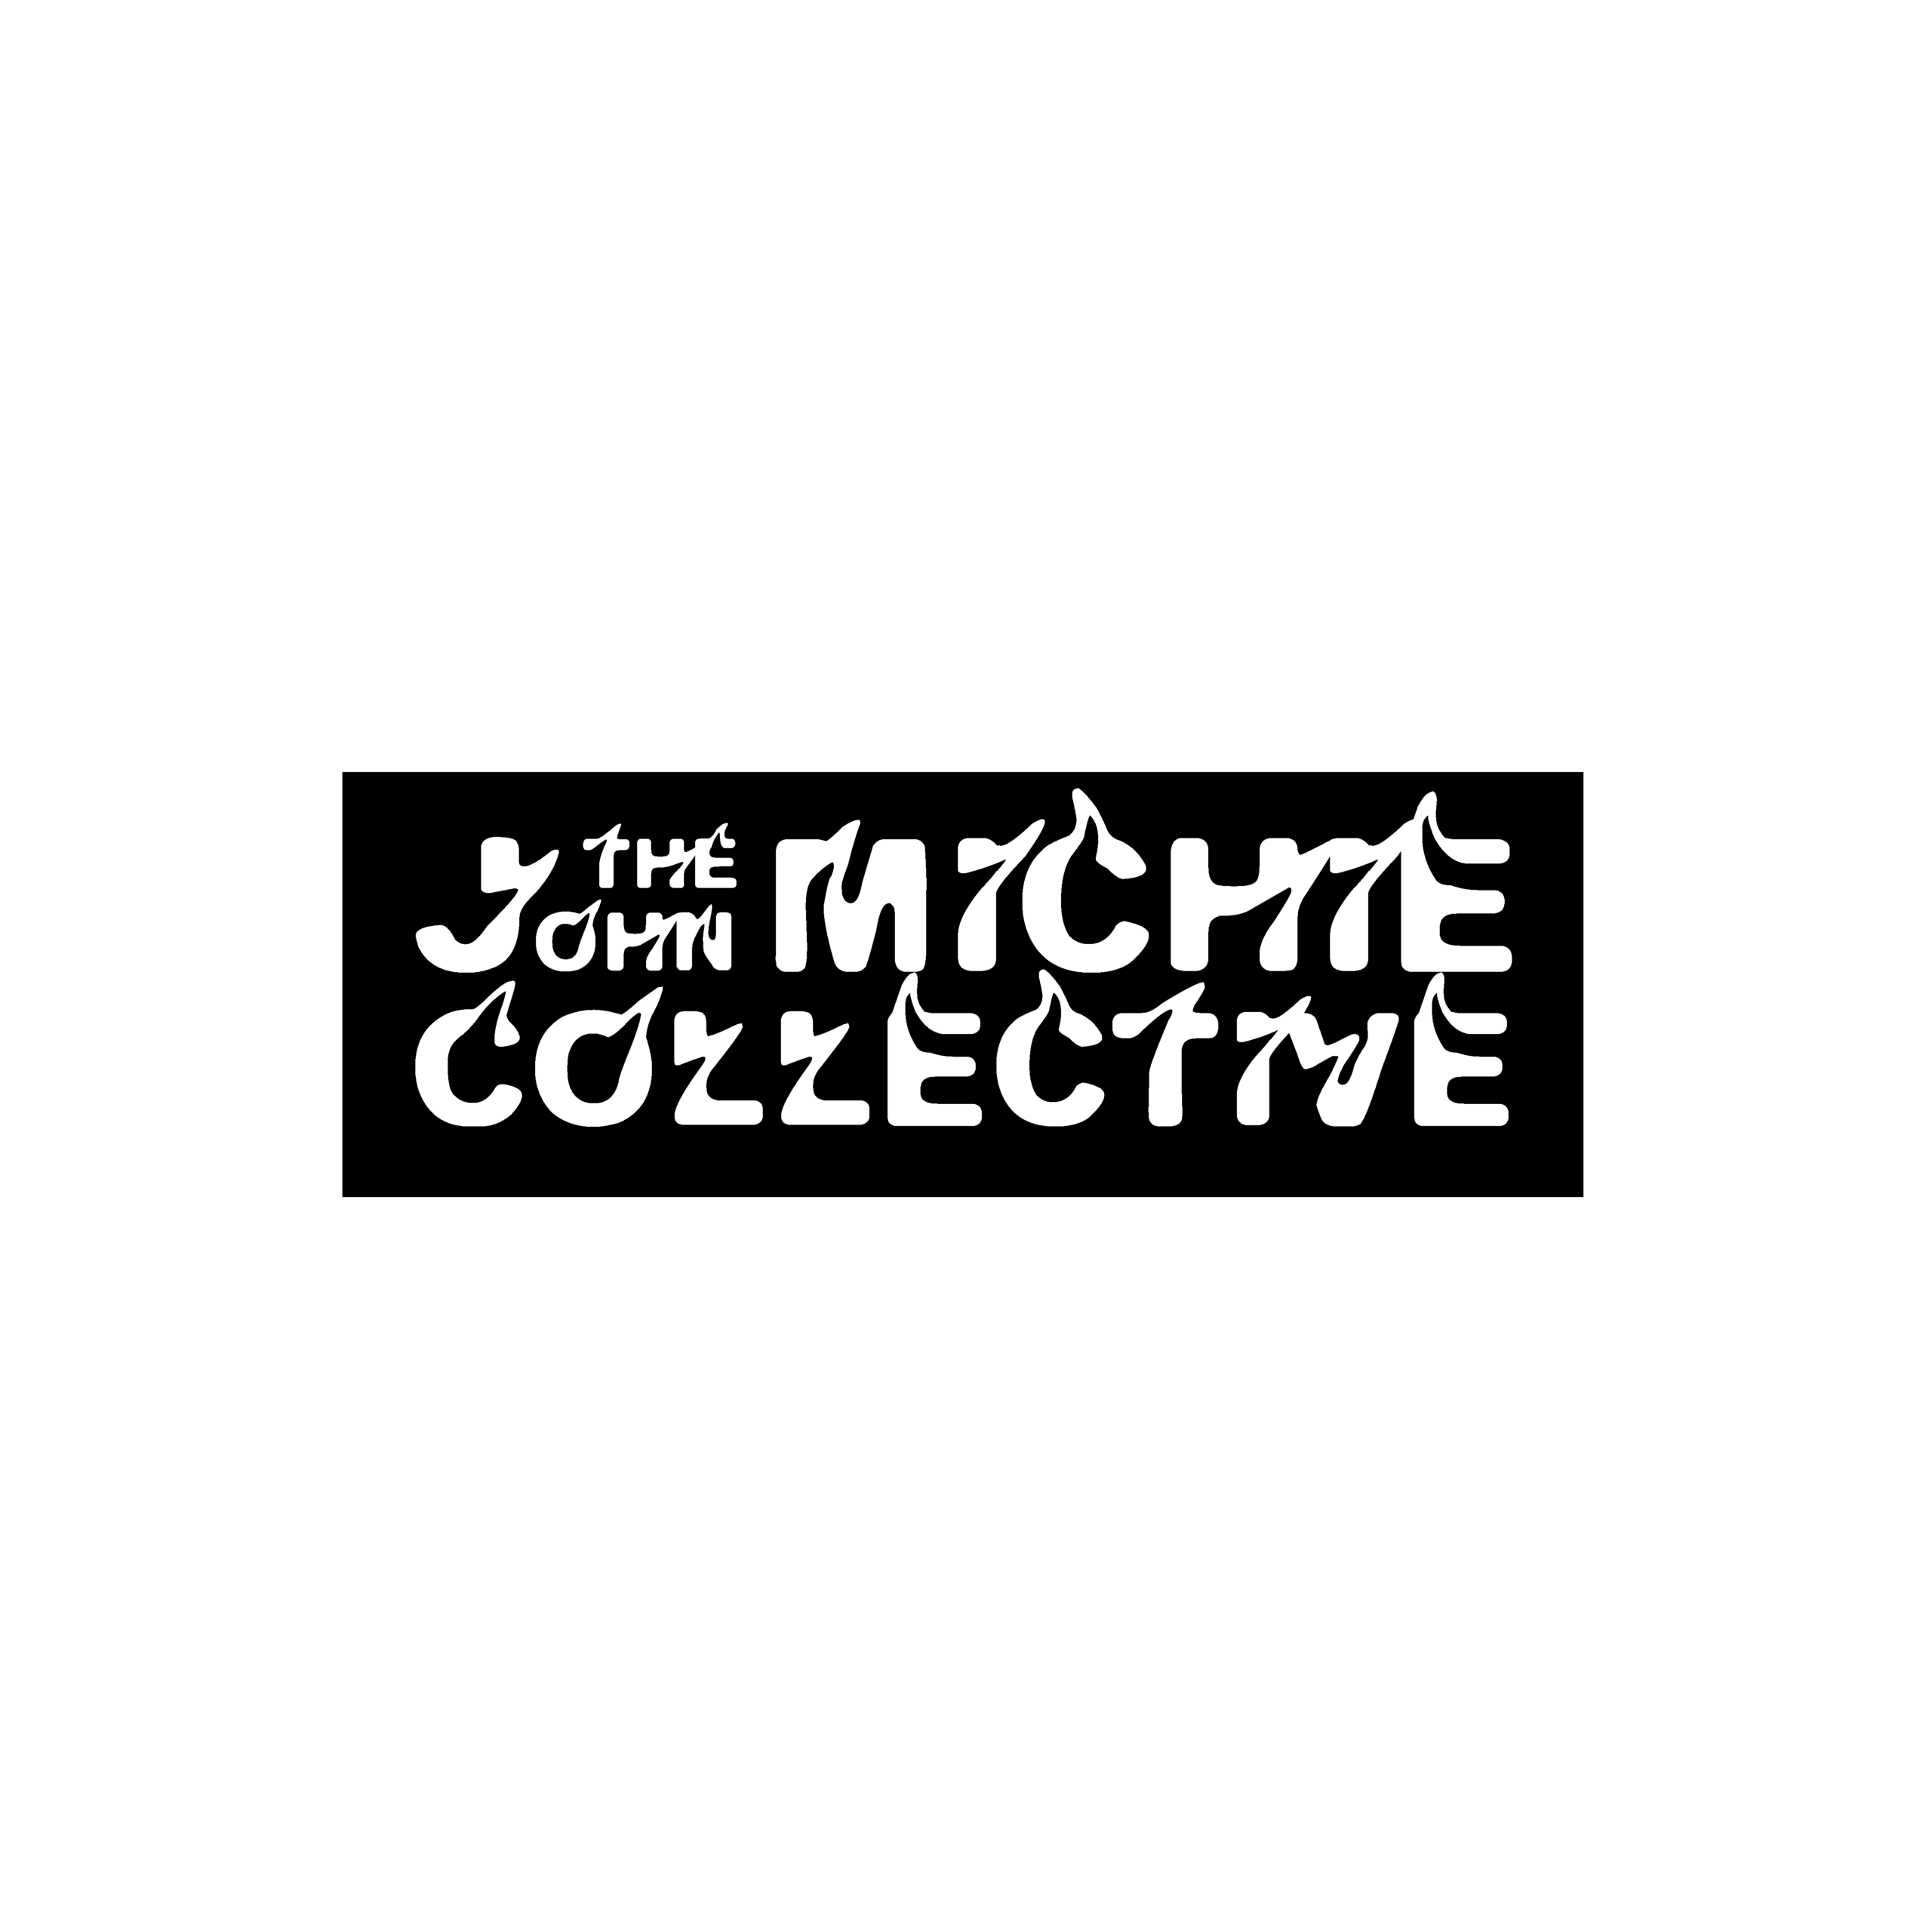 The John Michie Collective rock multi-instrumentalist multimedia artist england